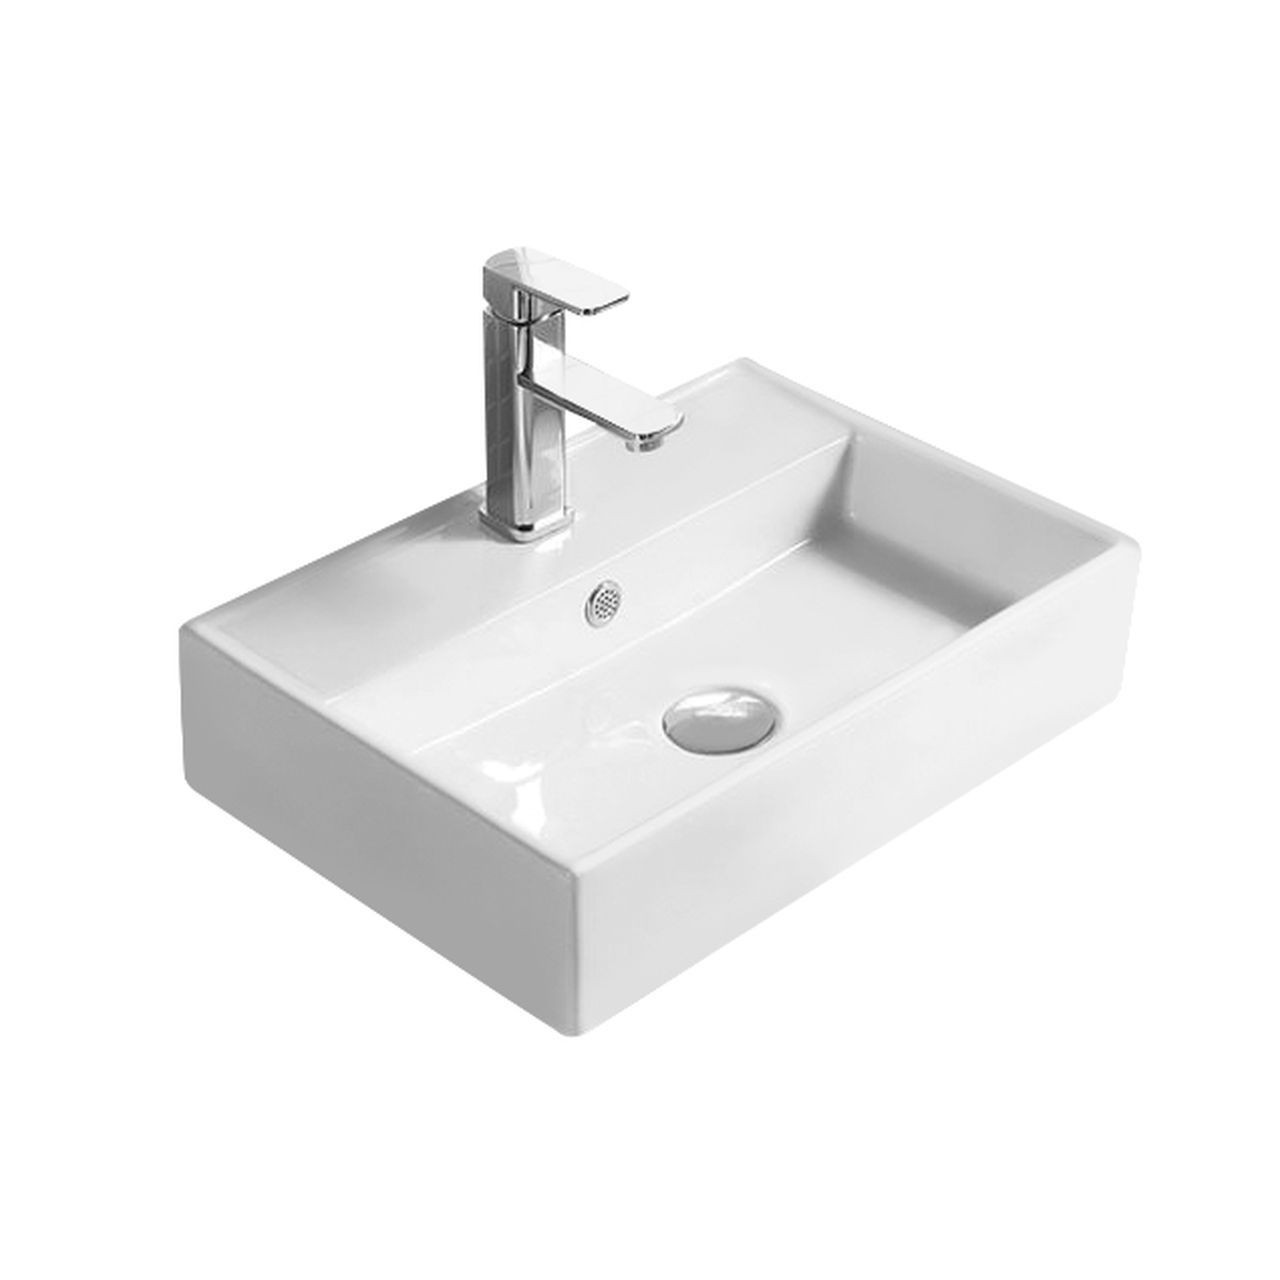 Hudson Reed 500mm x 350mm x 120mm Counter Top Basin with 1 Tap Hole - NBV178